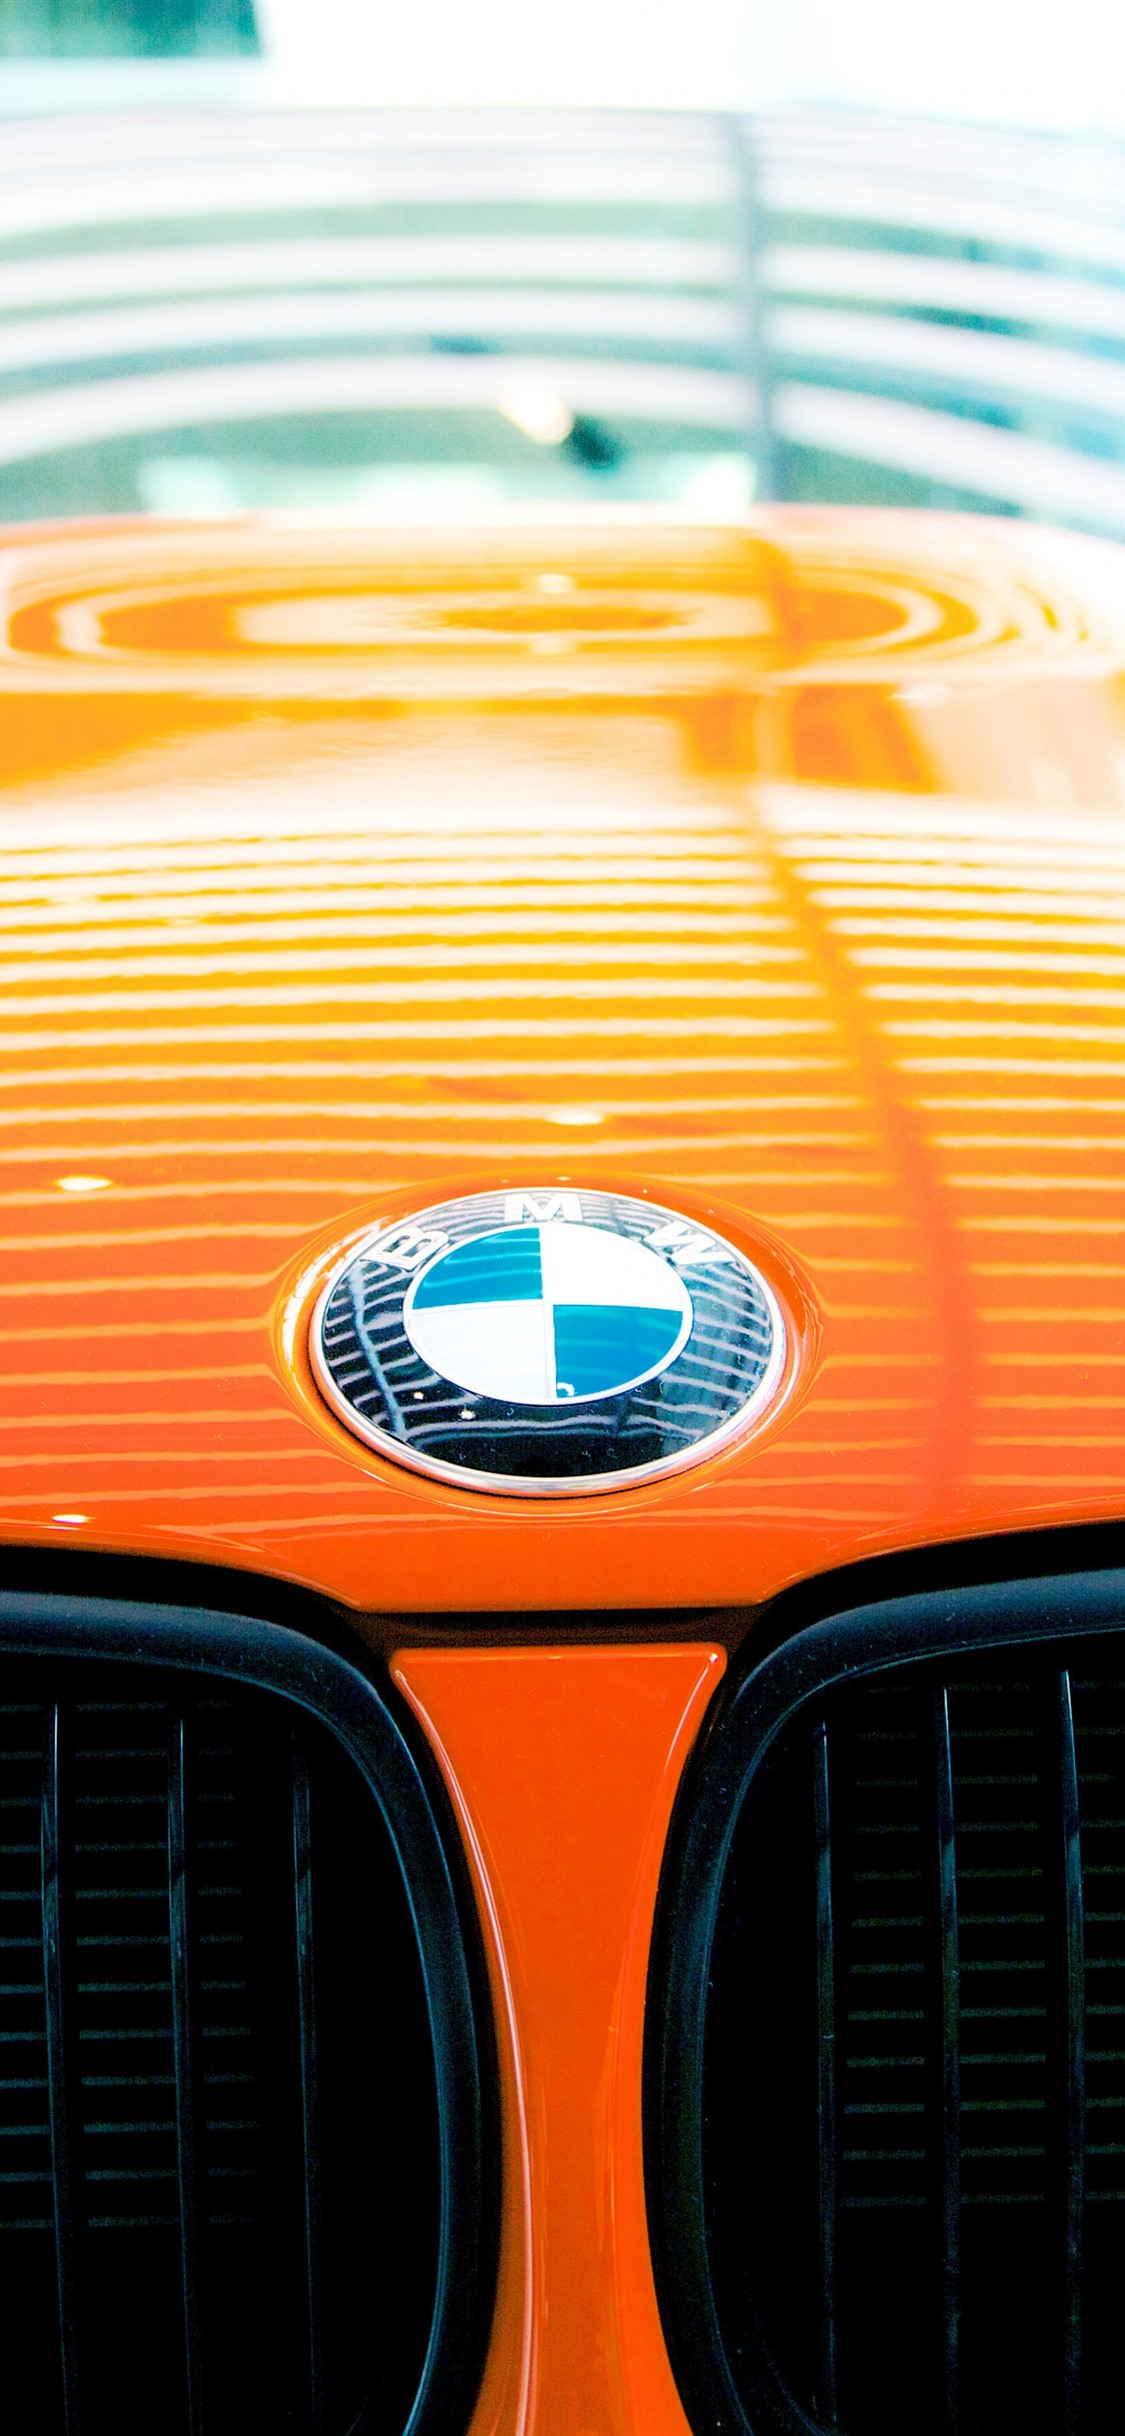 Bmw Logo Orange Car 1242x2688 Iphone 11 Pro Xs Max Wallpaper Background Picture Image